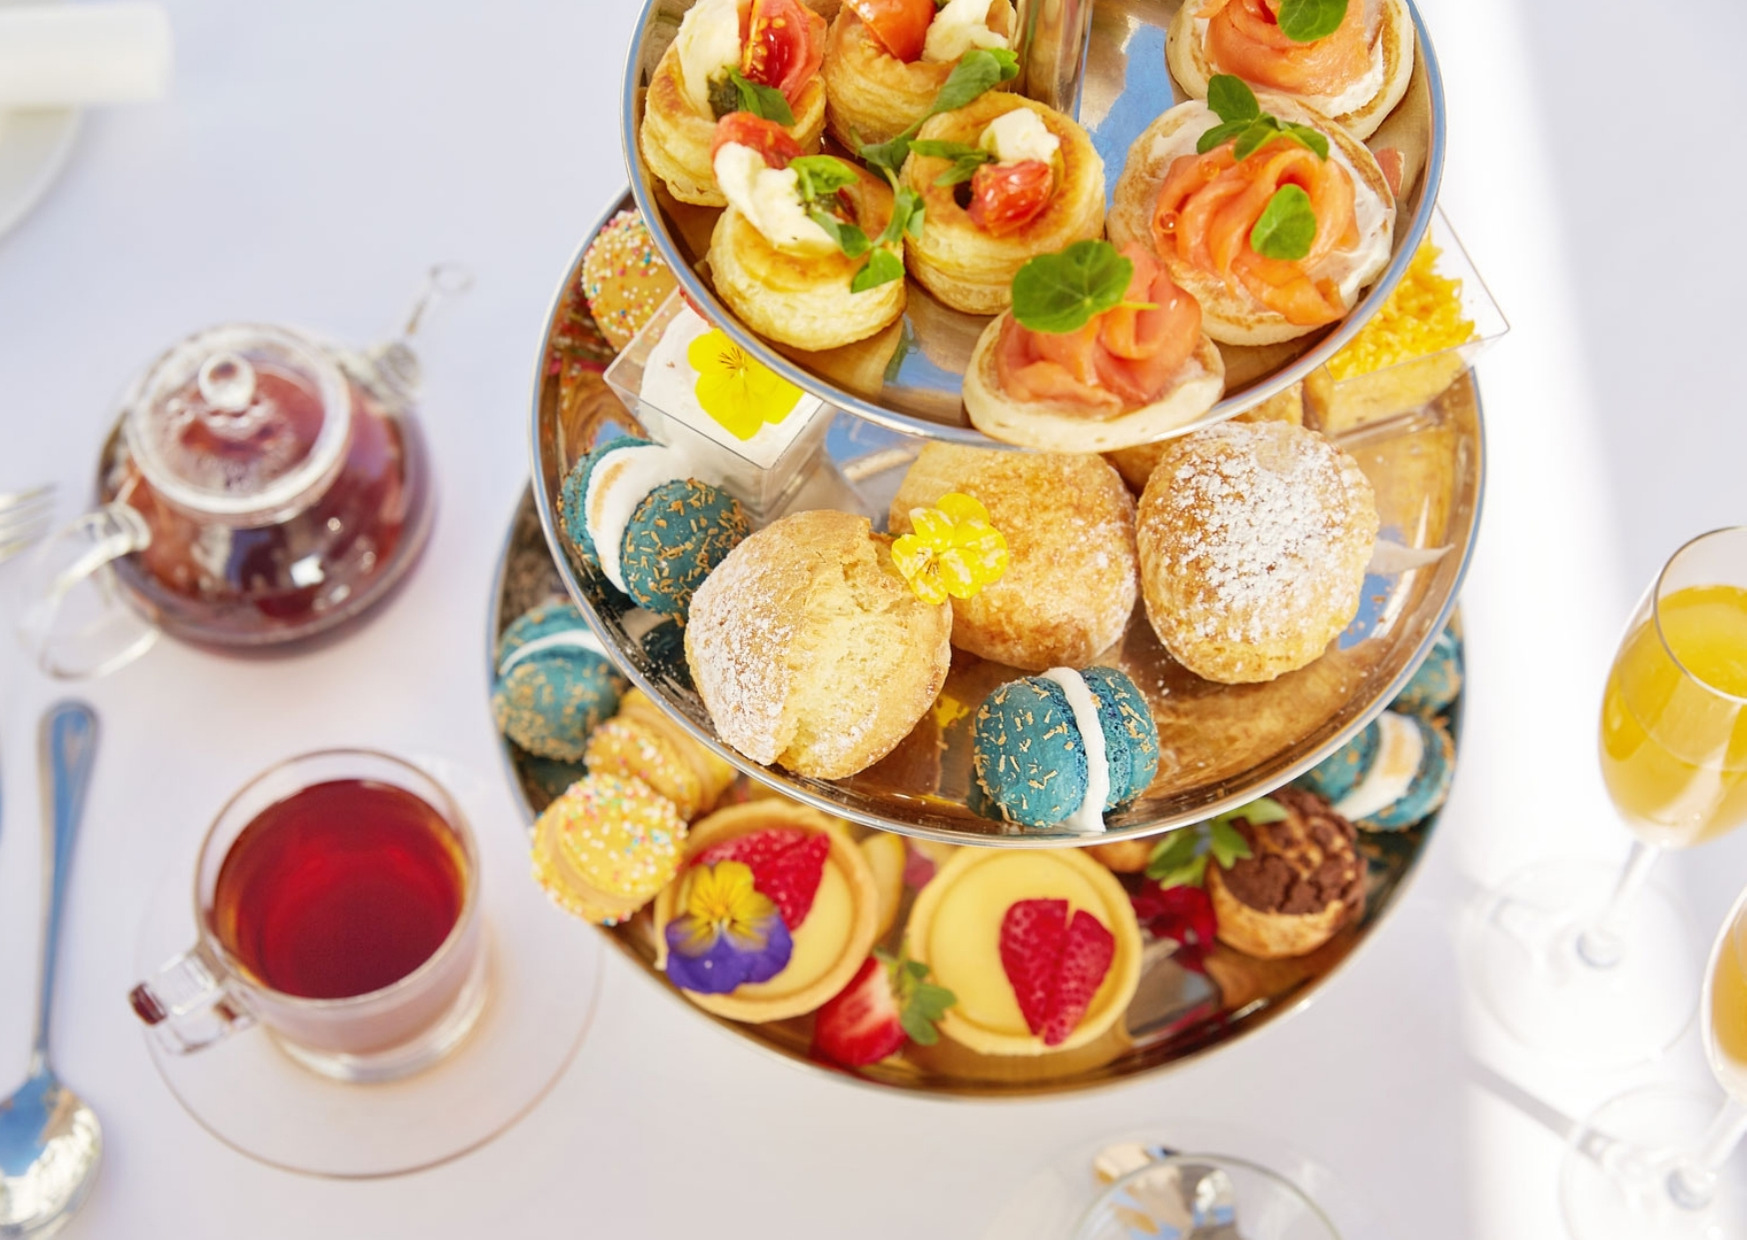 Valentine's Day High Tea at The President Sunday 14 February 2pm - 5pm Sonia Cabano blog eatdrinkcapetown